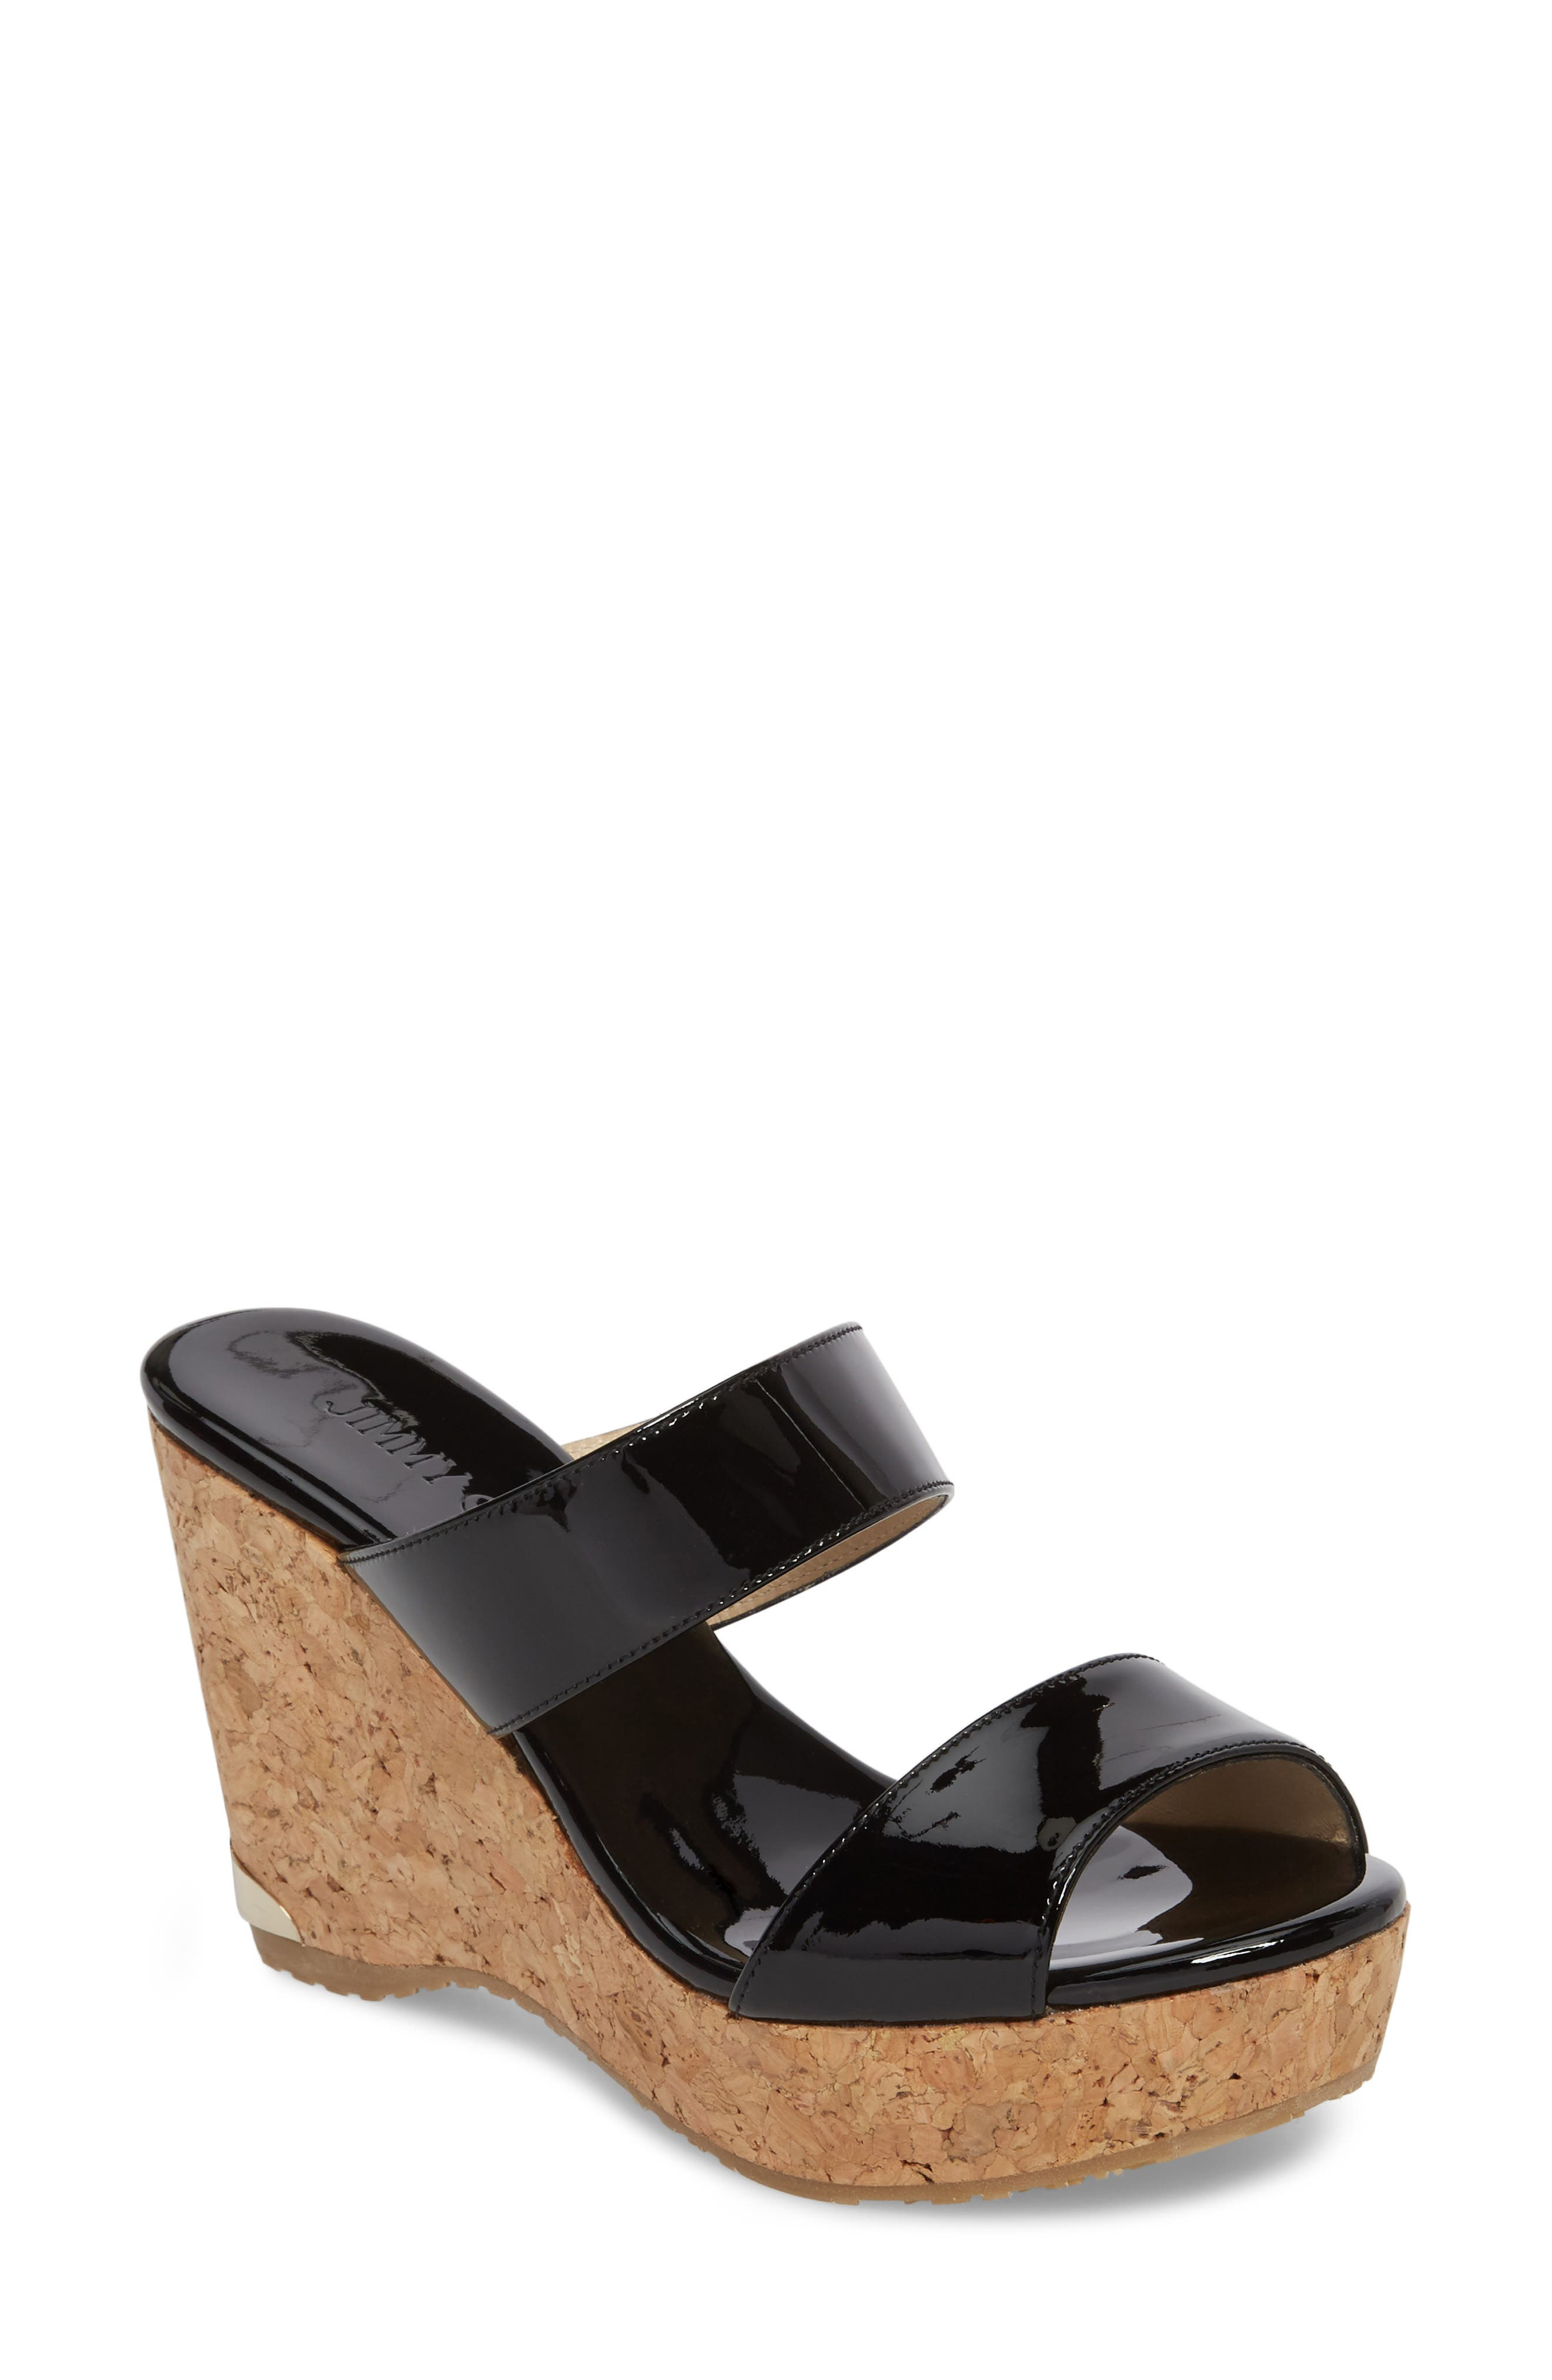 Parker Sandal,                         Main,                         color, BLACK